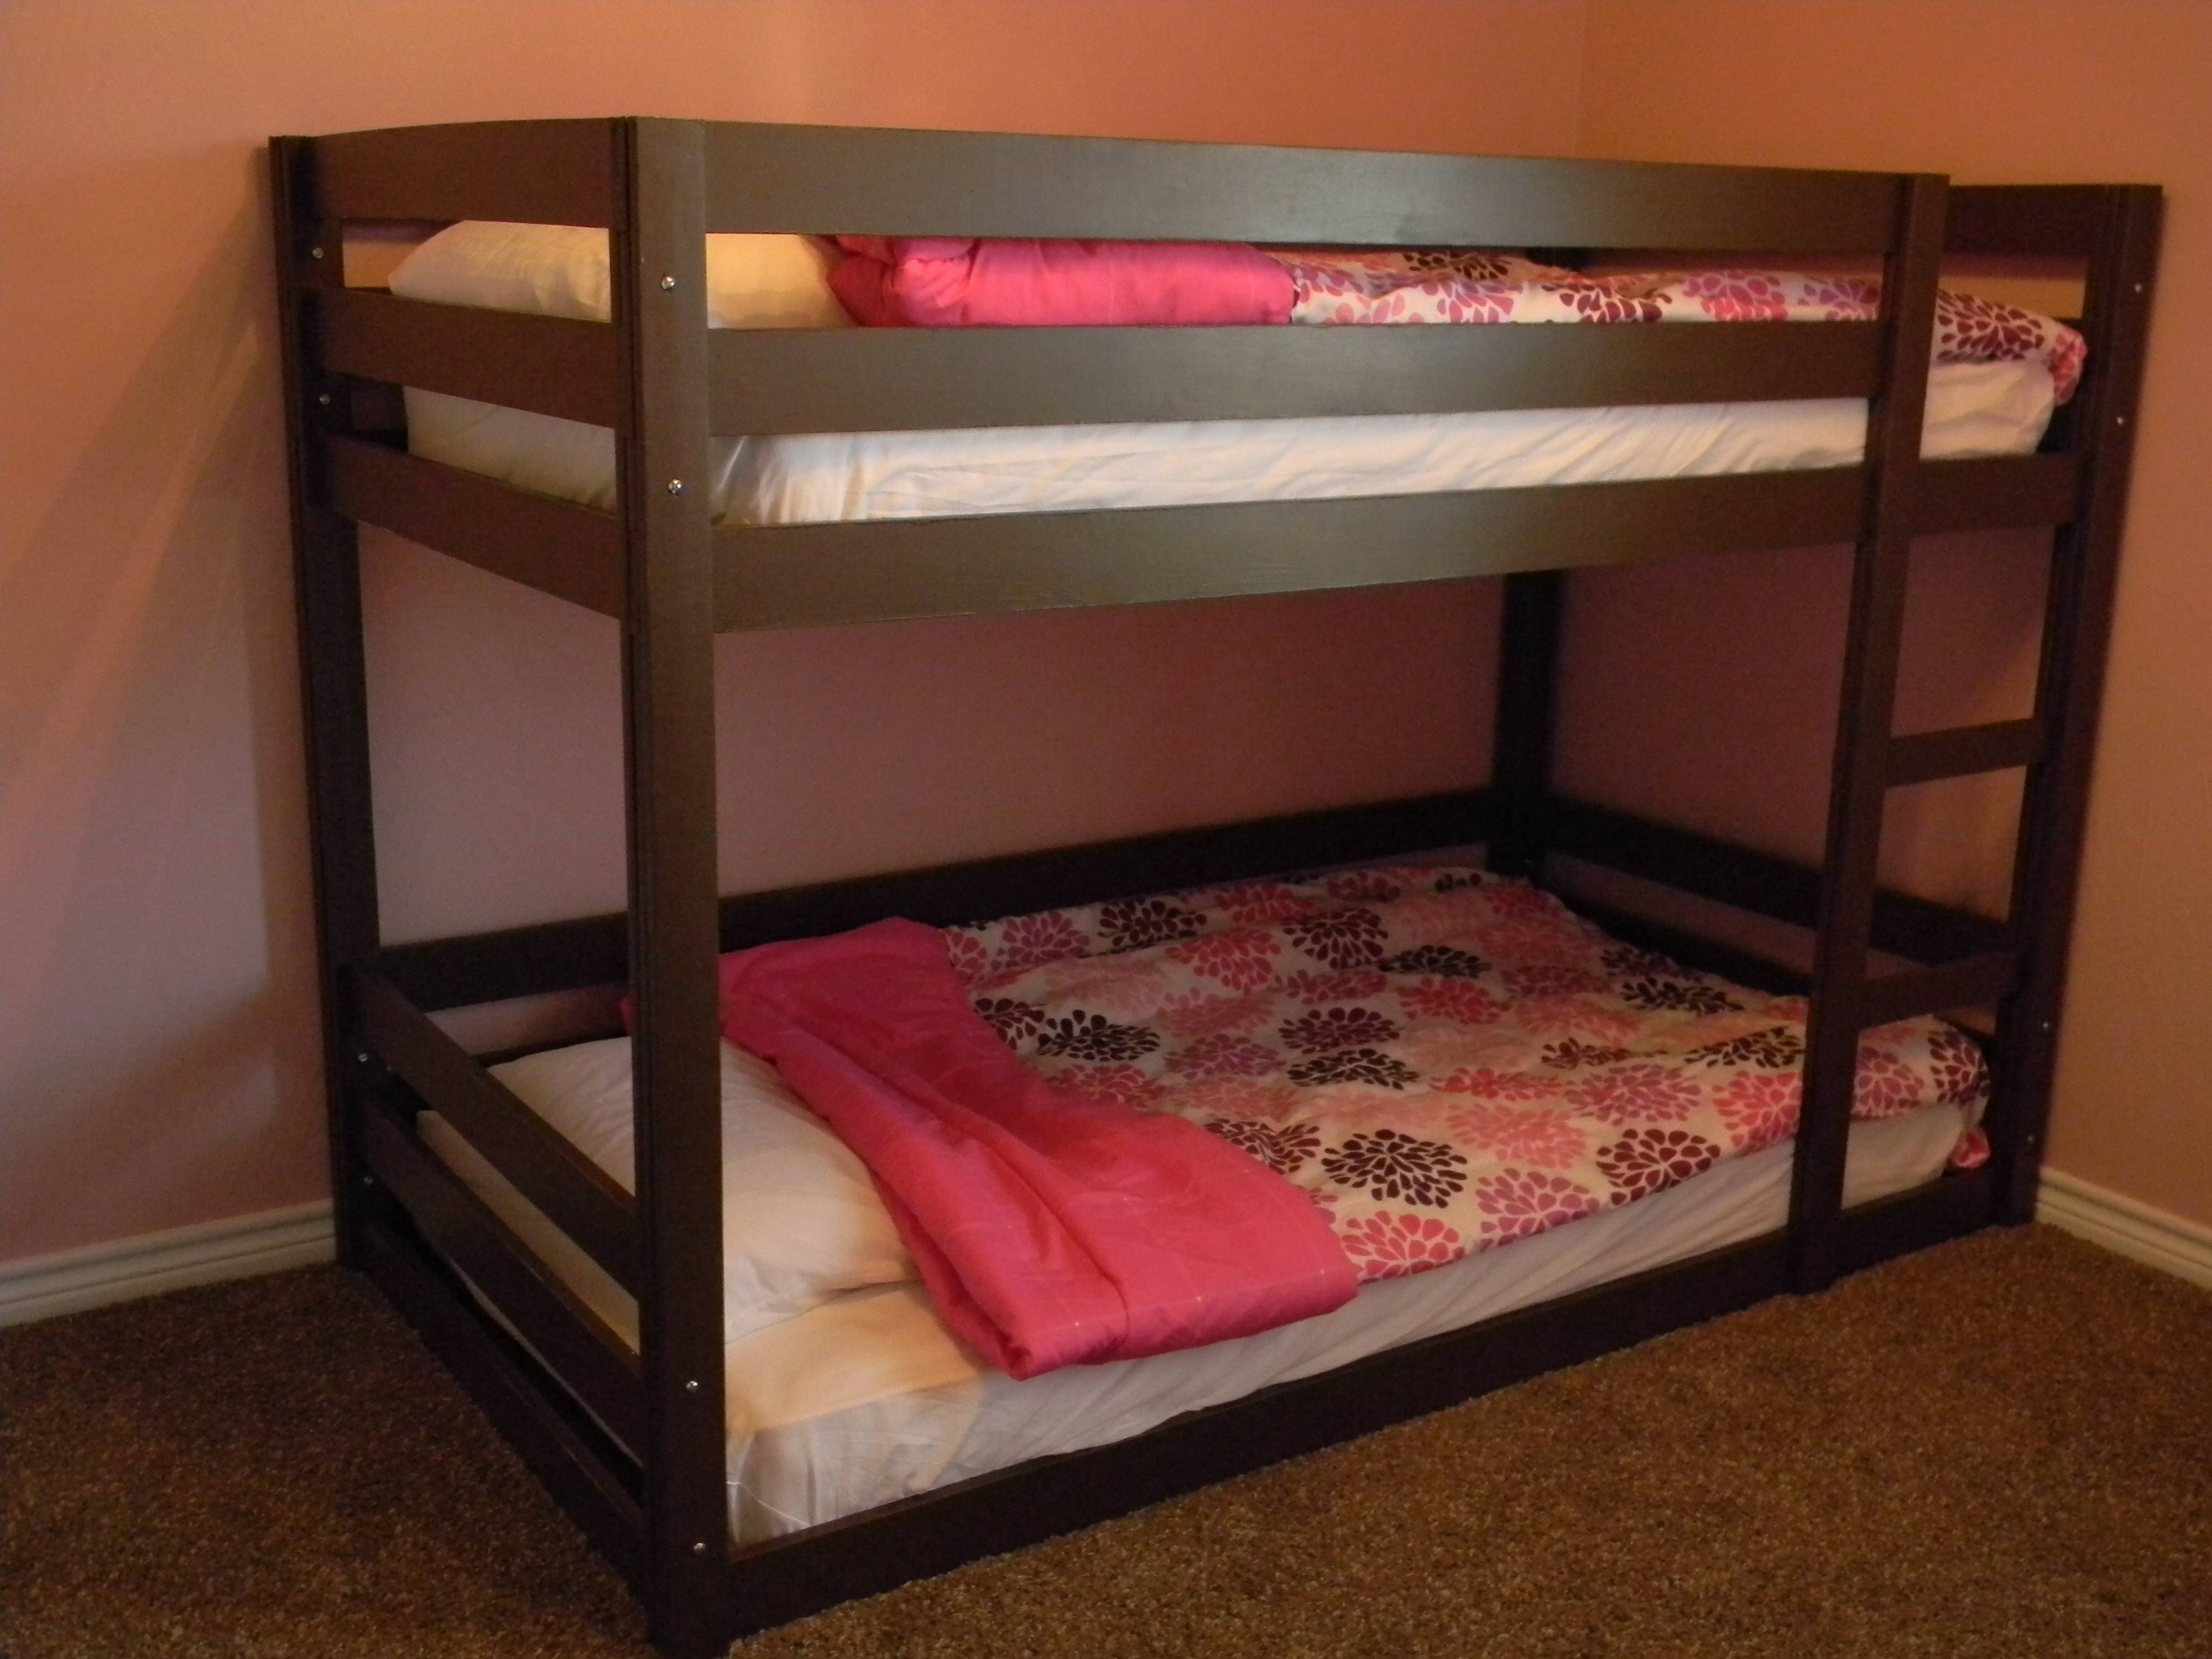 Modified Classic Bunk Beds Yourself Home Projects Ana